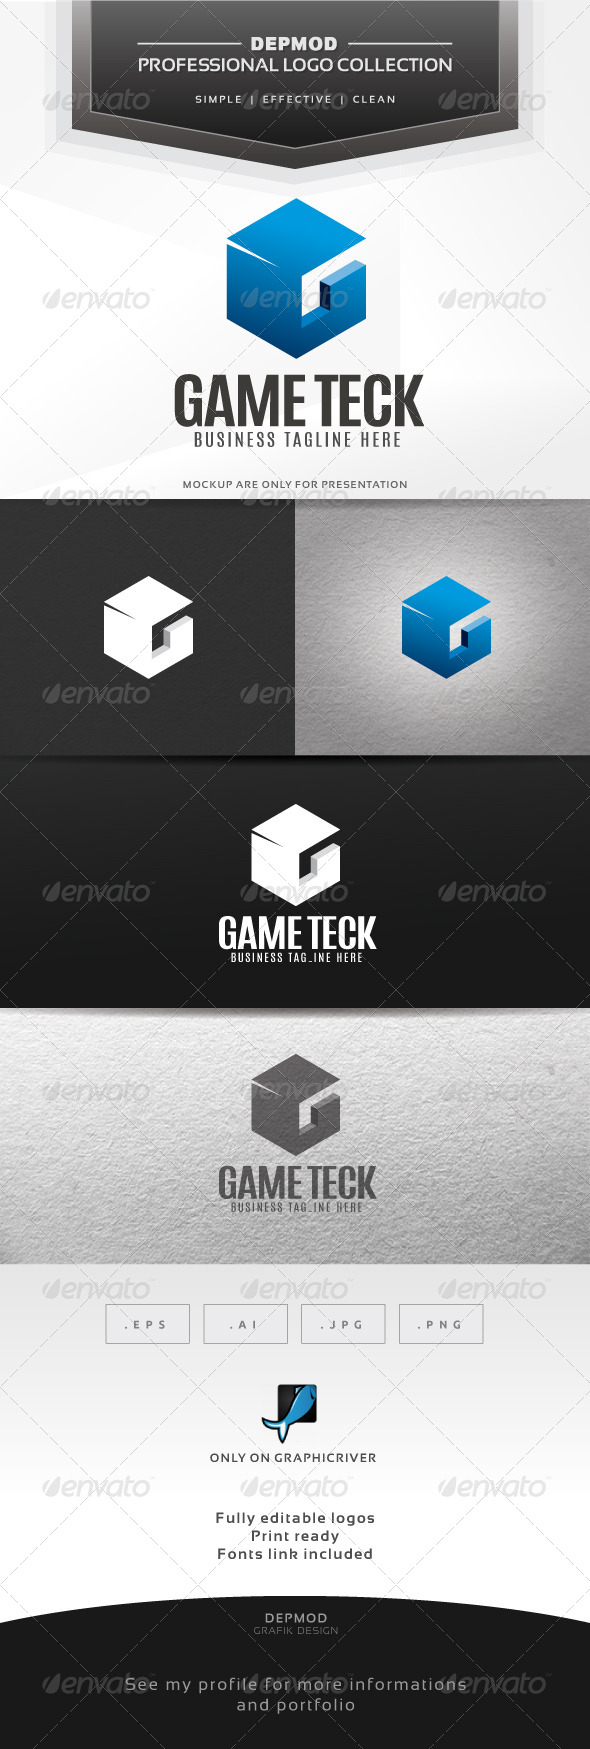 Game Teck Logo